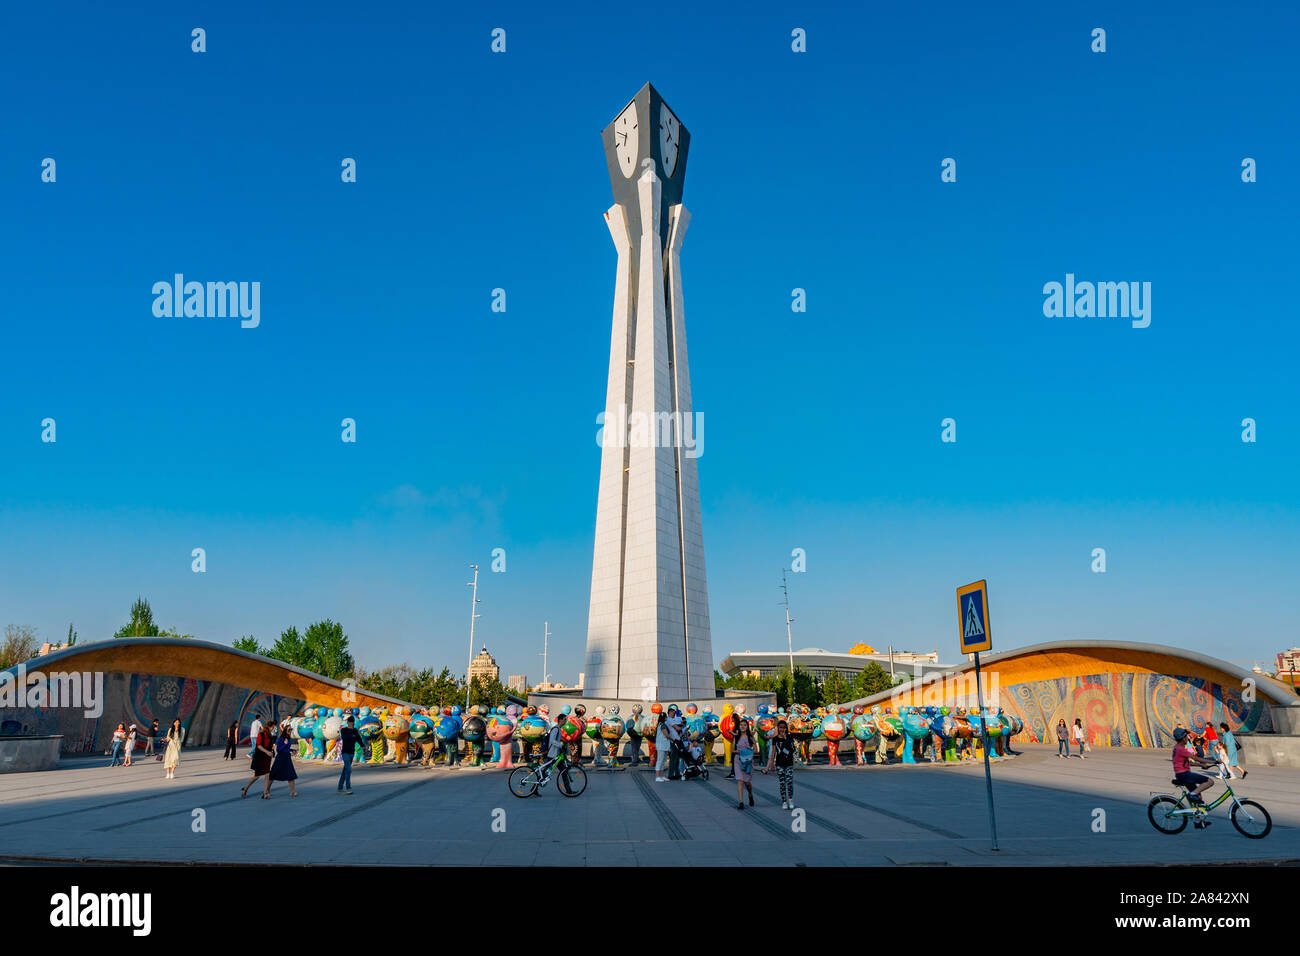 Nur-Sultan Astana Central City Tsentralnyy Gorodskoy Park View of Day of Kazakhstan Monument on a Sunny Blue Sky Day Stock Photo